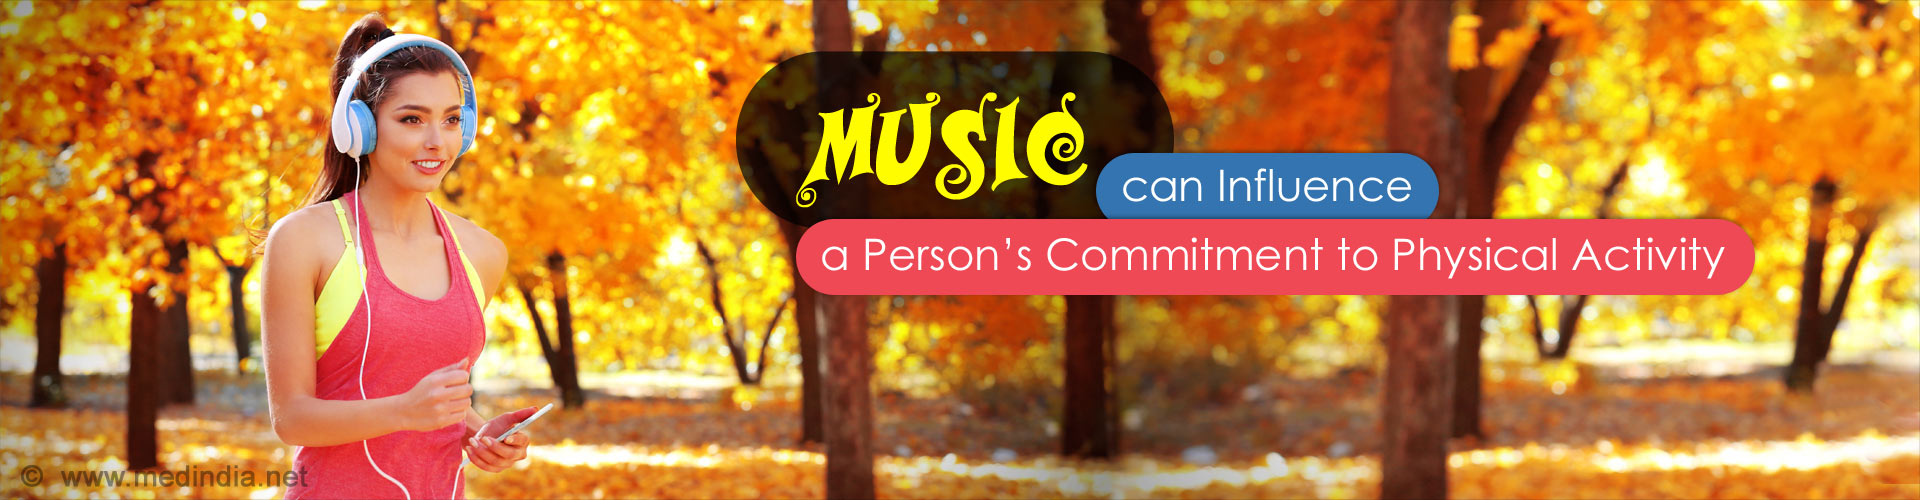 Music Can Influence A Person's Commitment to Physical Activity